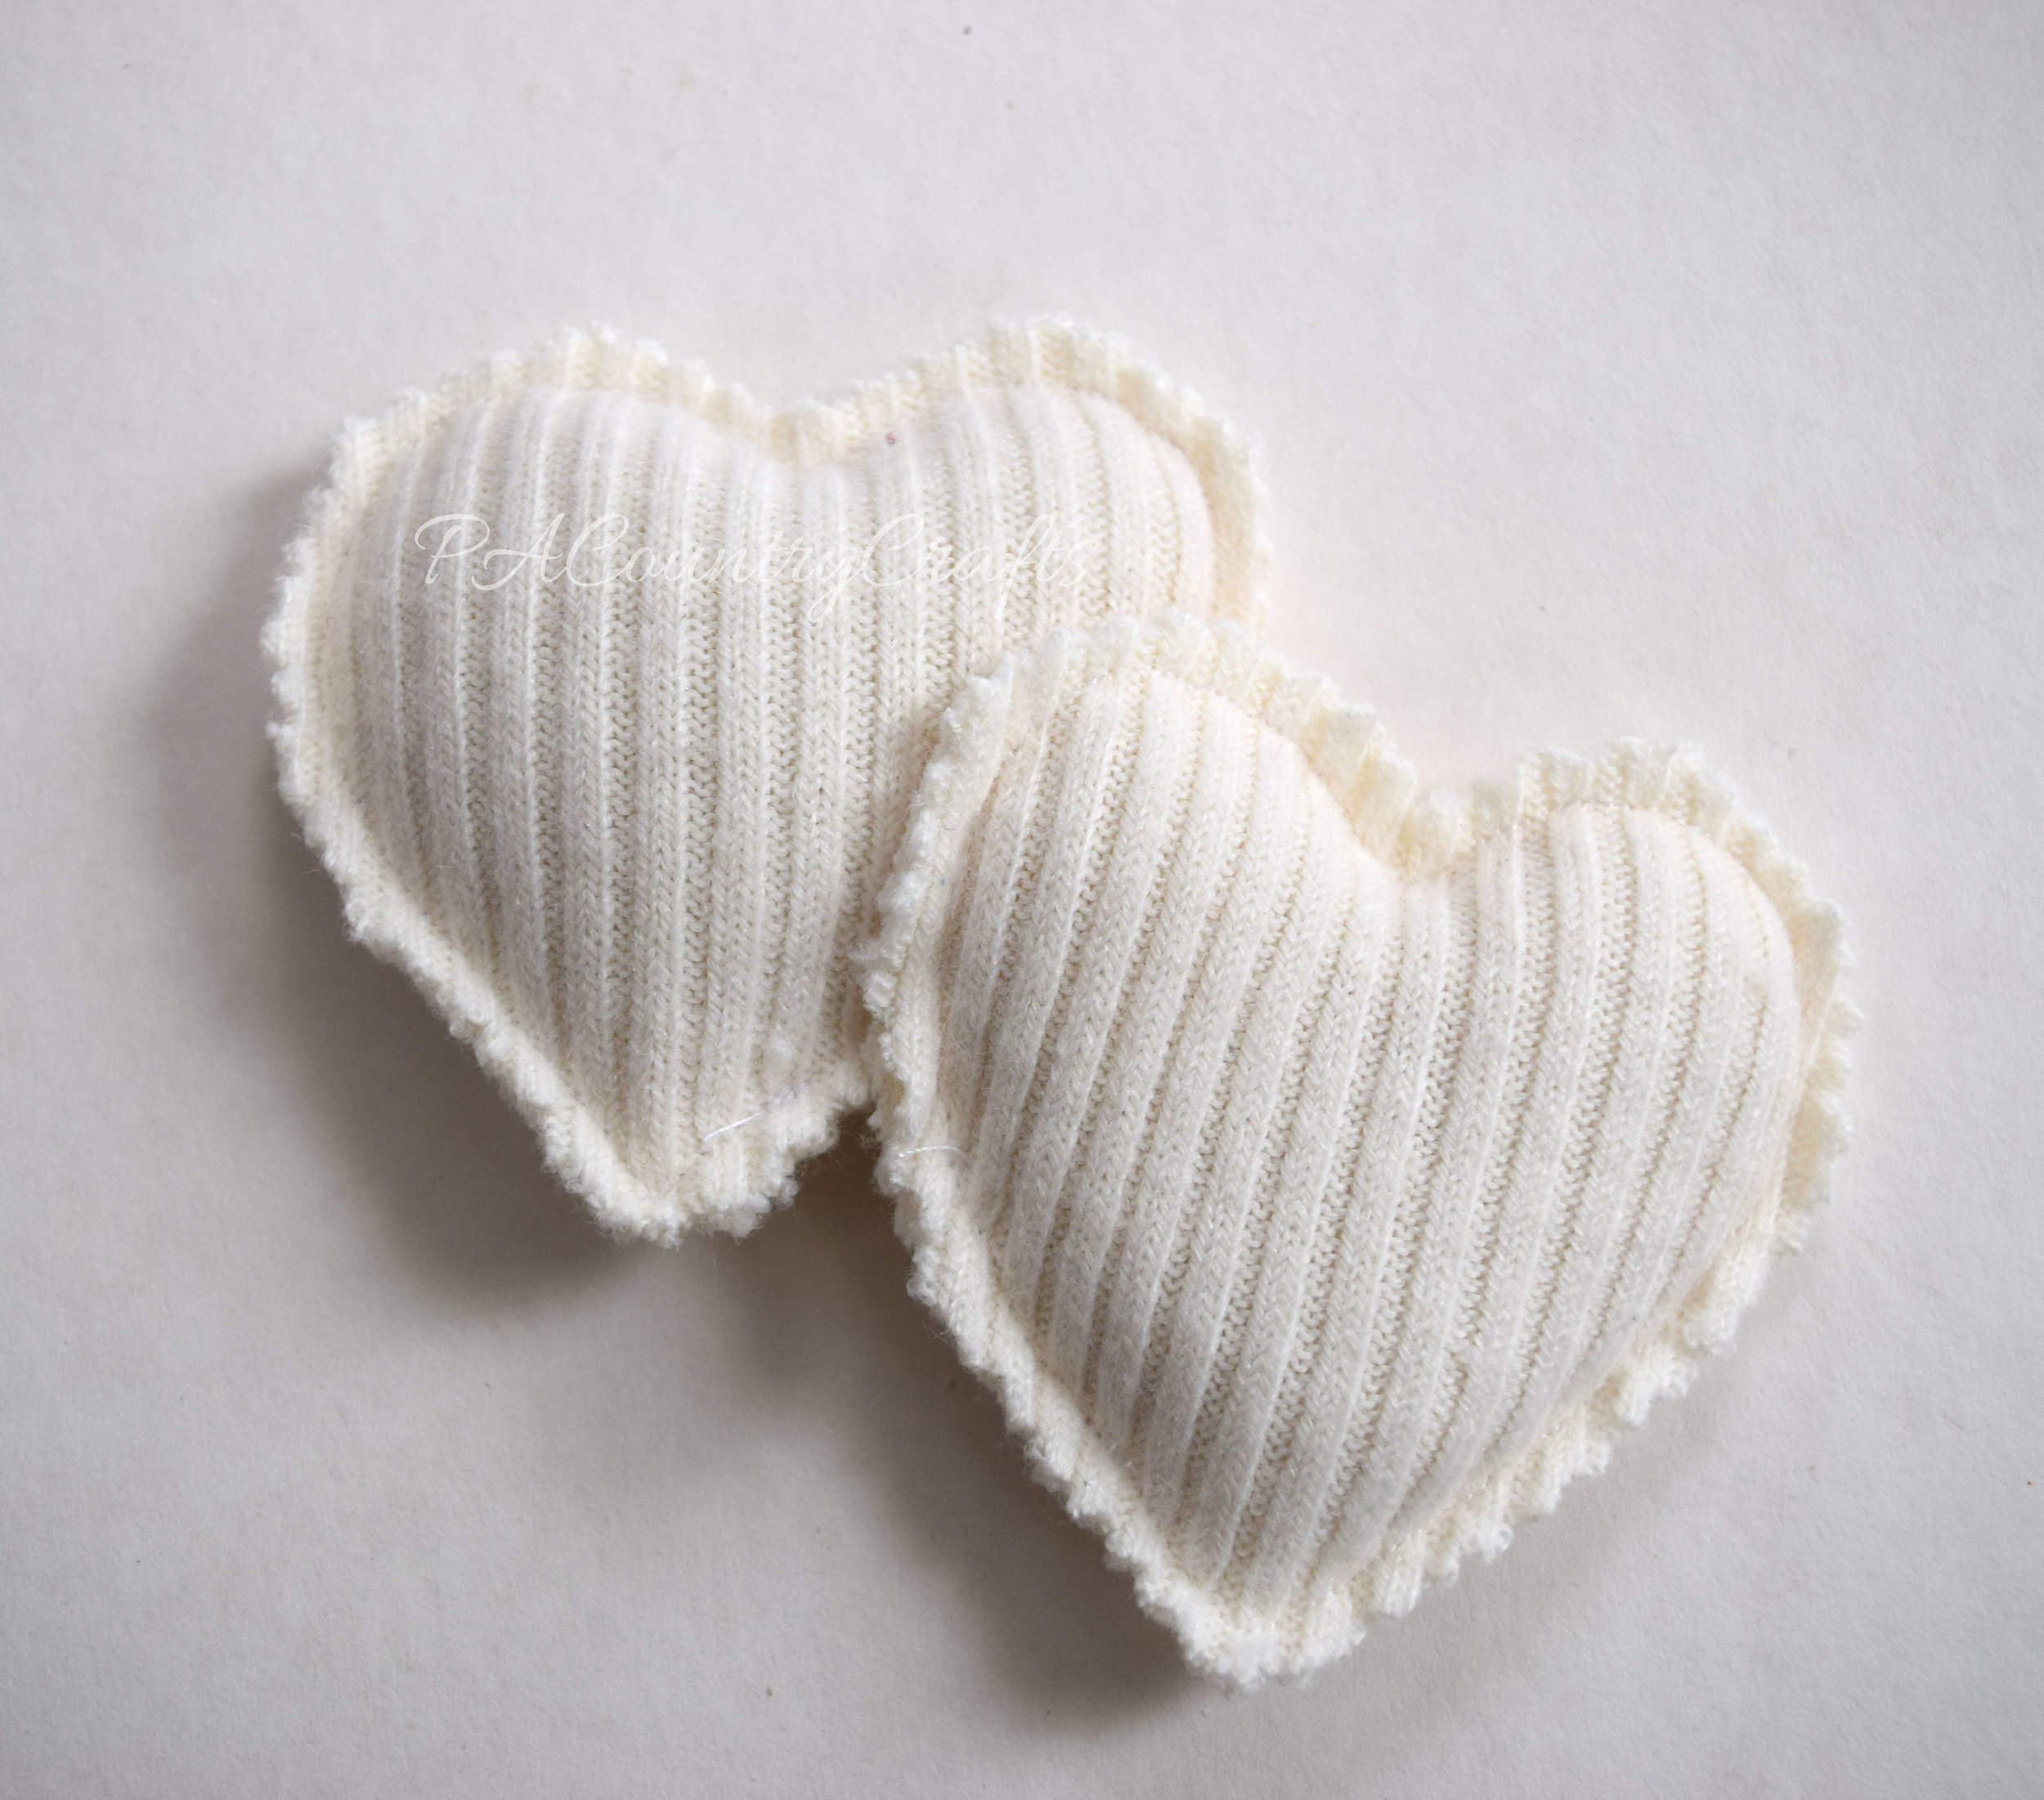 DIY hand warmers made from old sweater scraps